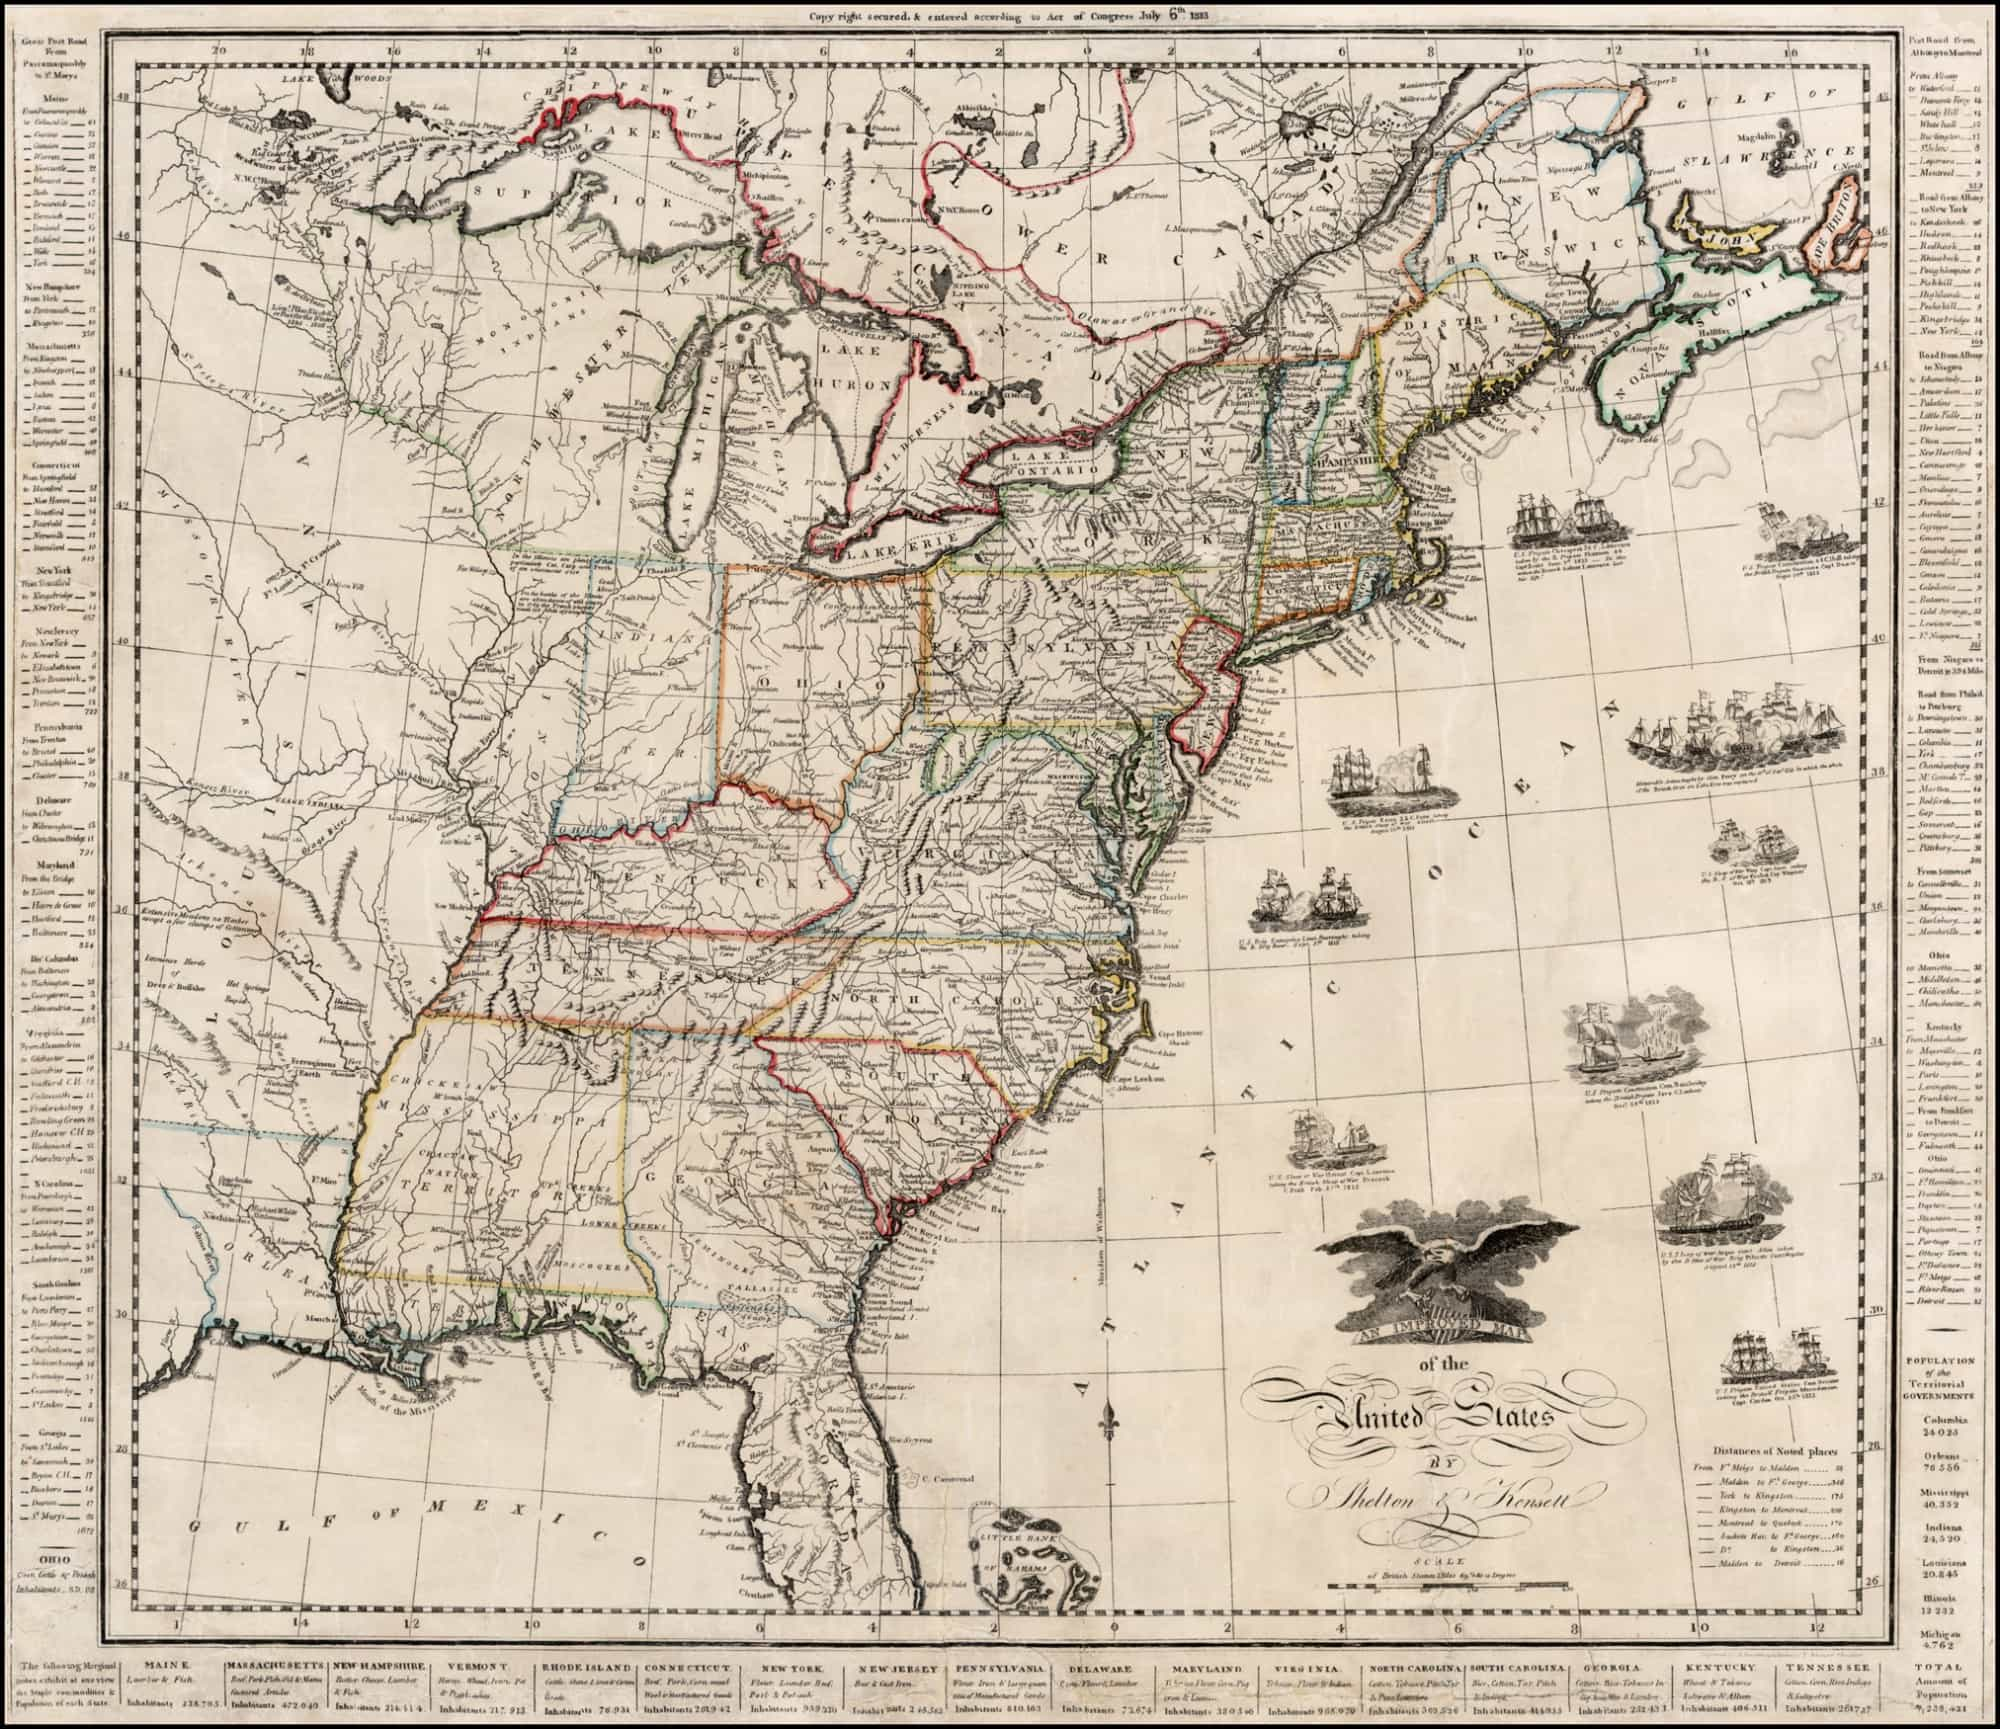 A Scarce War Of 1812 Era Map Of The United States Rare Antique Maps - Us-map-1812